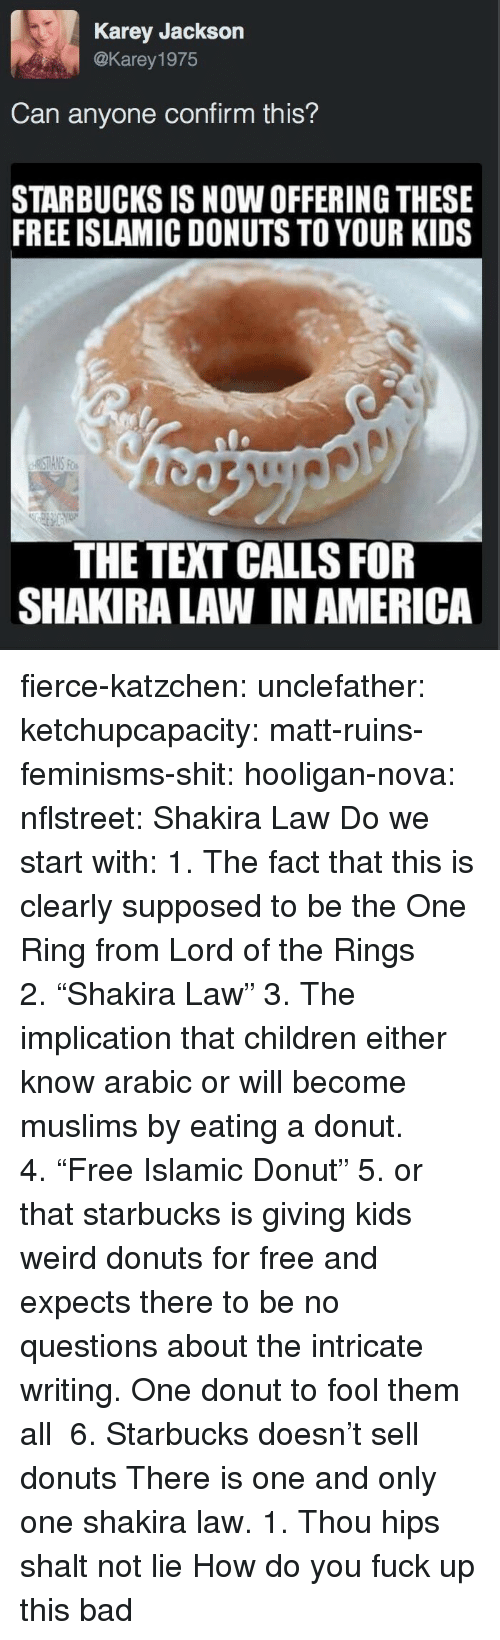 """America, Bad, and Children: Karey Jackson  @Karey 1975  Can anyone confirm this?  STARBUCKS IS NOW OFFERING THESE  FREE ISLAMIC DONUTS TO YOUR KIDS  THE TEXT CALLS FOR  SHAKIRA LAW IN AMERICA fierce-katzchen:  unclefather:  ketchupcapacity:  matt-ruins-feminisms-shit:  hooligan-nova:  nflstreet: Shakira Law Do we start with: 1. The fact that this is clearly supposed to be the One Ring from Lord of the Rings 2.""""Shakira Law"""" 3. The implication that children either know arabic or will become muslims by eating a donut. 4.""""Free Islamic Donut"""" 5. or that starbucks is giving kids weird donuts for free and expects there to be no questions about the intricate writing.  One donut to fool them all   6. Starbucks doesn't sell donuts   There is one and only one shakira law. 1. Thou hips shalt not lie   How do you fuck up this bad"""